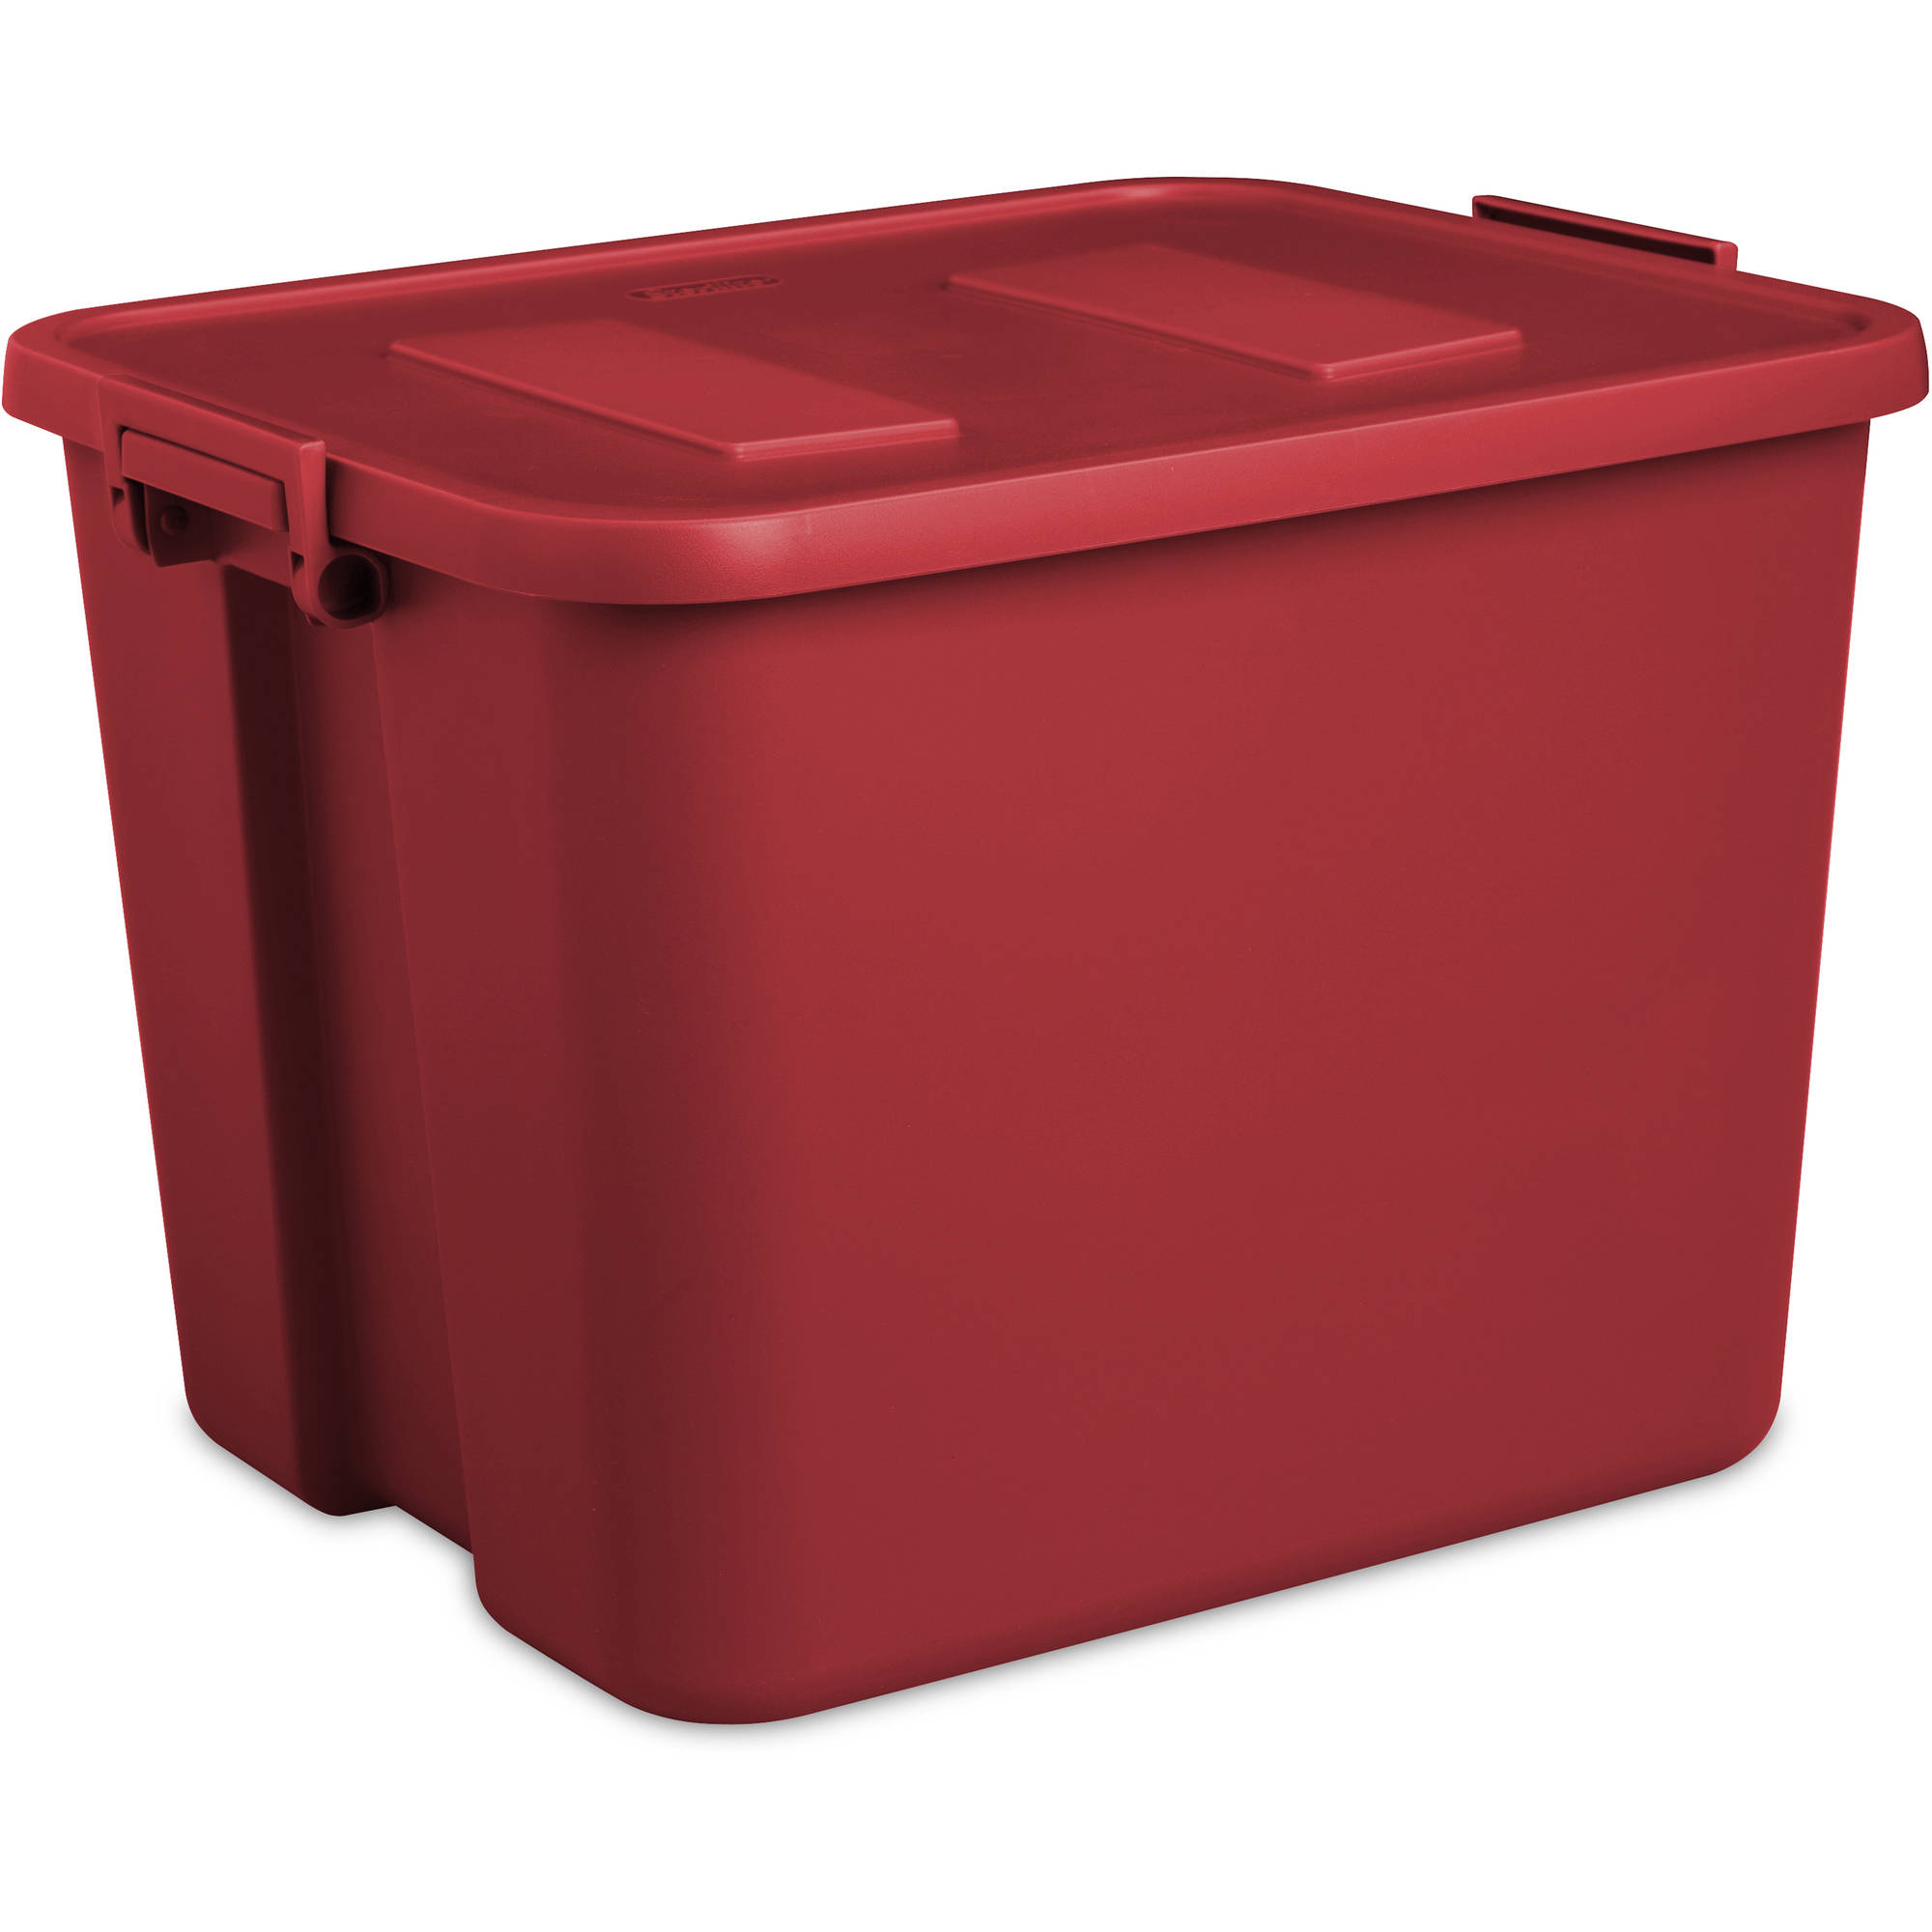 Sterilite 20-Gallon Latch Tote, Infra Red (Available in Case of 6 or Single Unit)